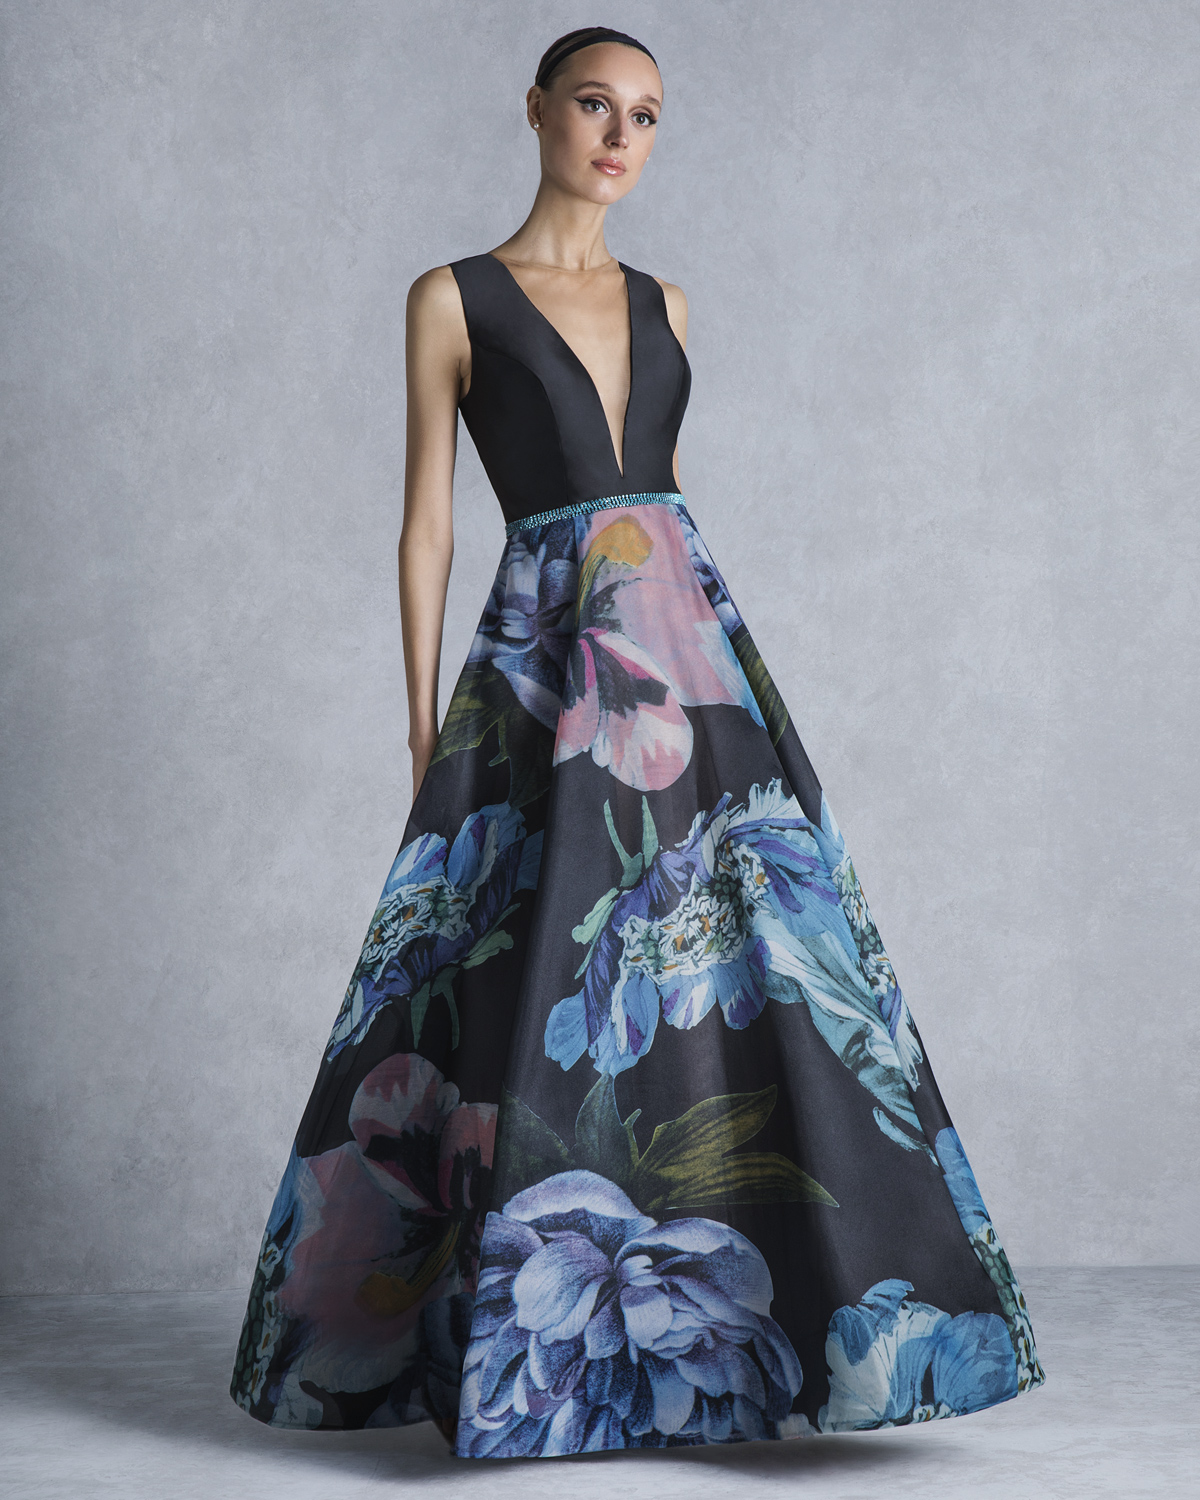 Evening Dresses / Long evening printed dress with beaded belt and solid color top